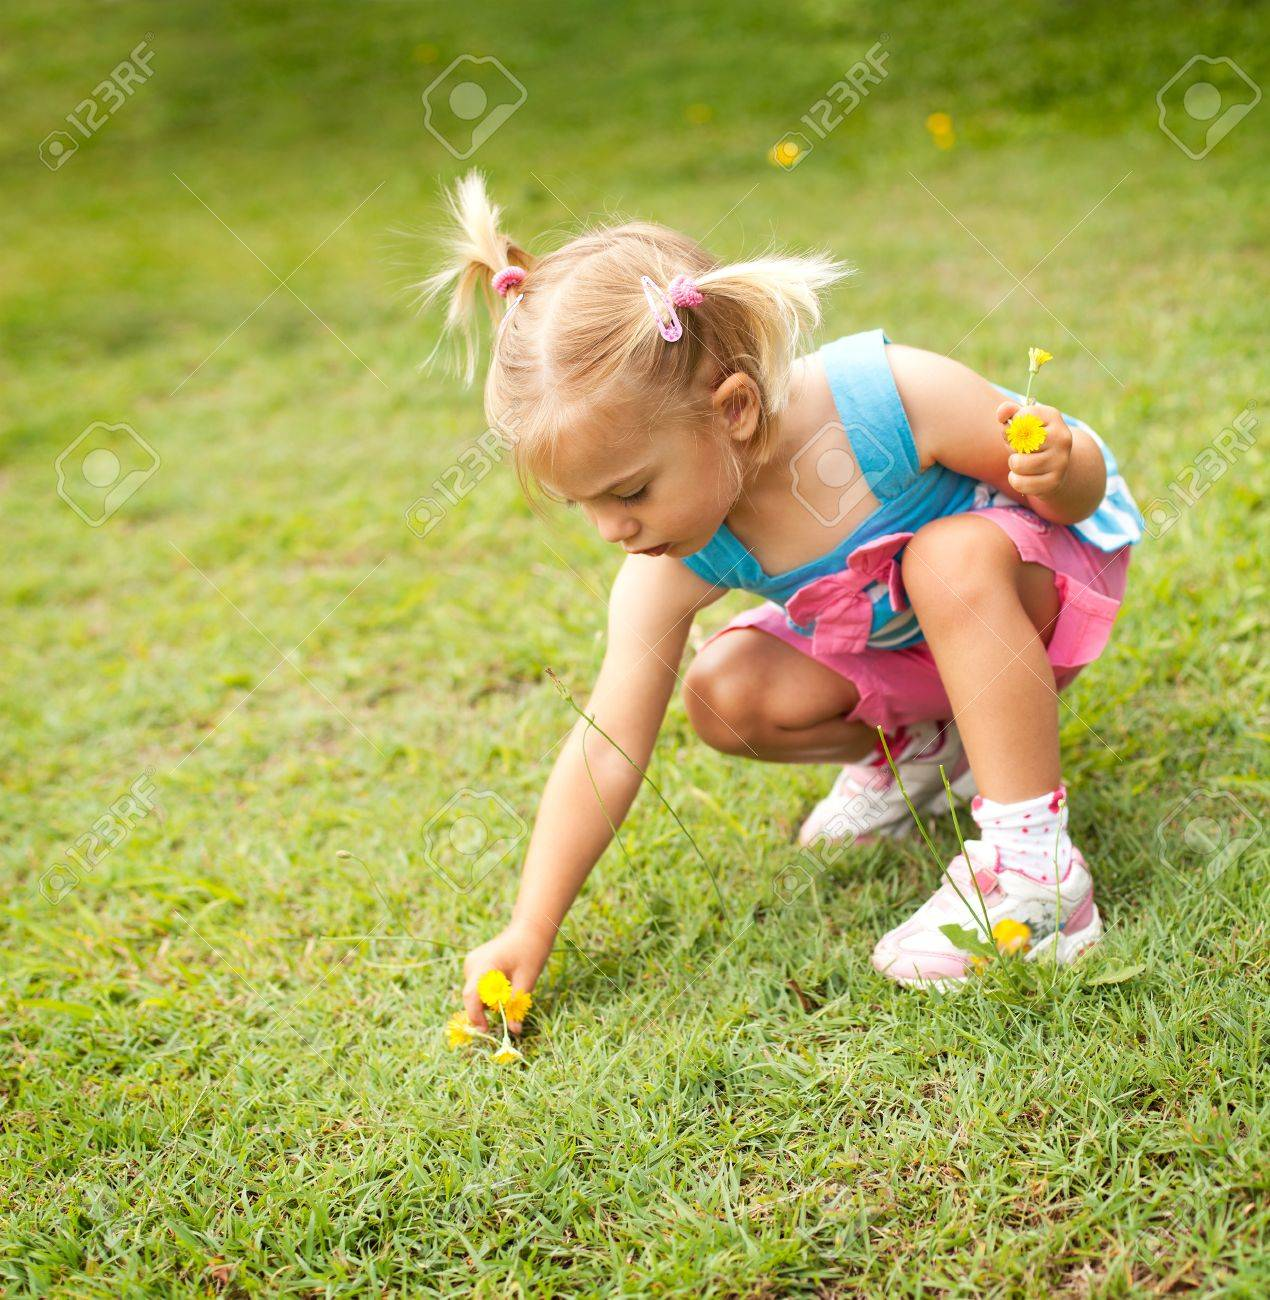 Little girl picking some yellow flowers in the garden Stock Photo - 12890974